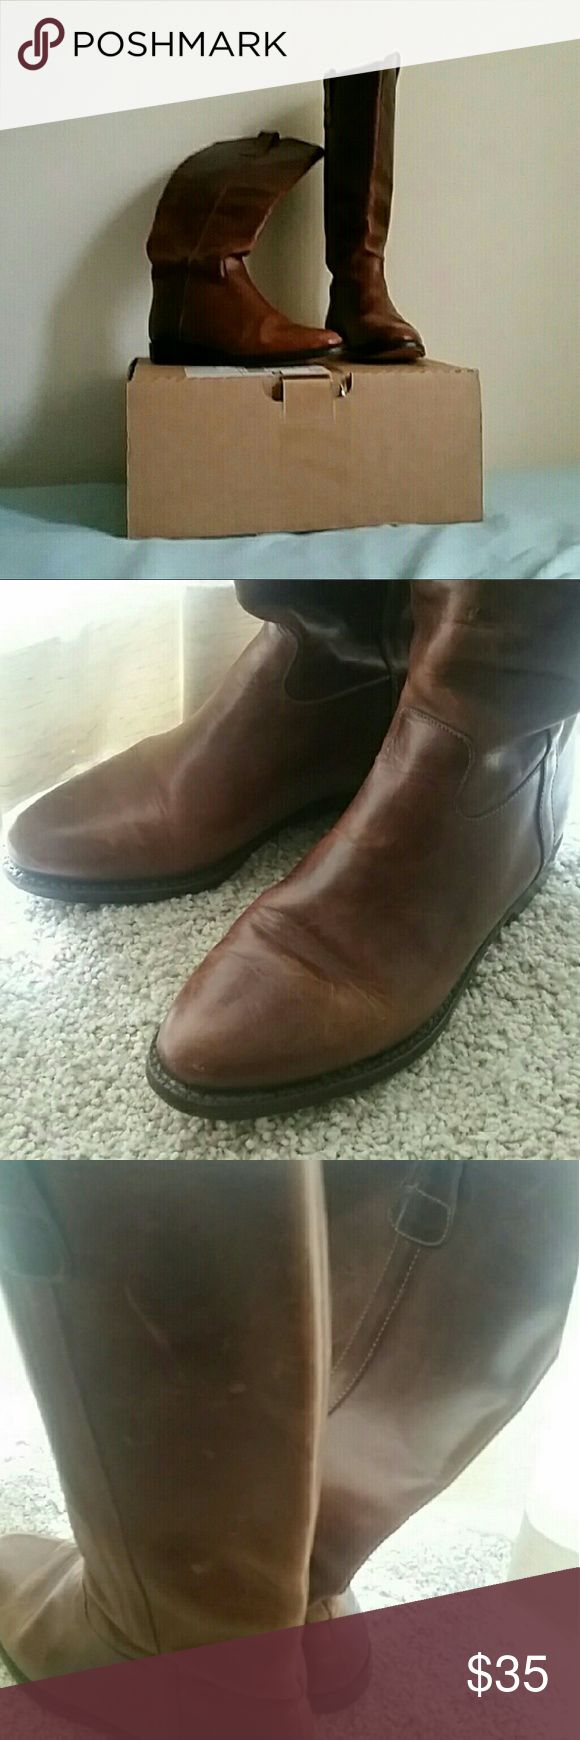 """Cole Haan Brown Leather Riding Boot 7.5 Cognac color. Have worn look to them. Minor scuffs and some wear to soles. They pull on and aren't terribly worn in so pulling them off and on takes a minute. My calves are about 14"""" and I can wear these with thin skinny jeans or leggings. Cole Haan Shoes"""